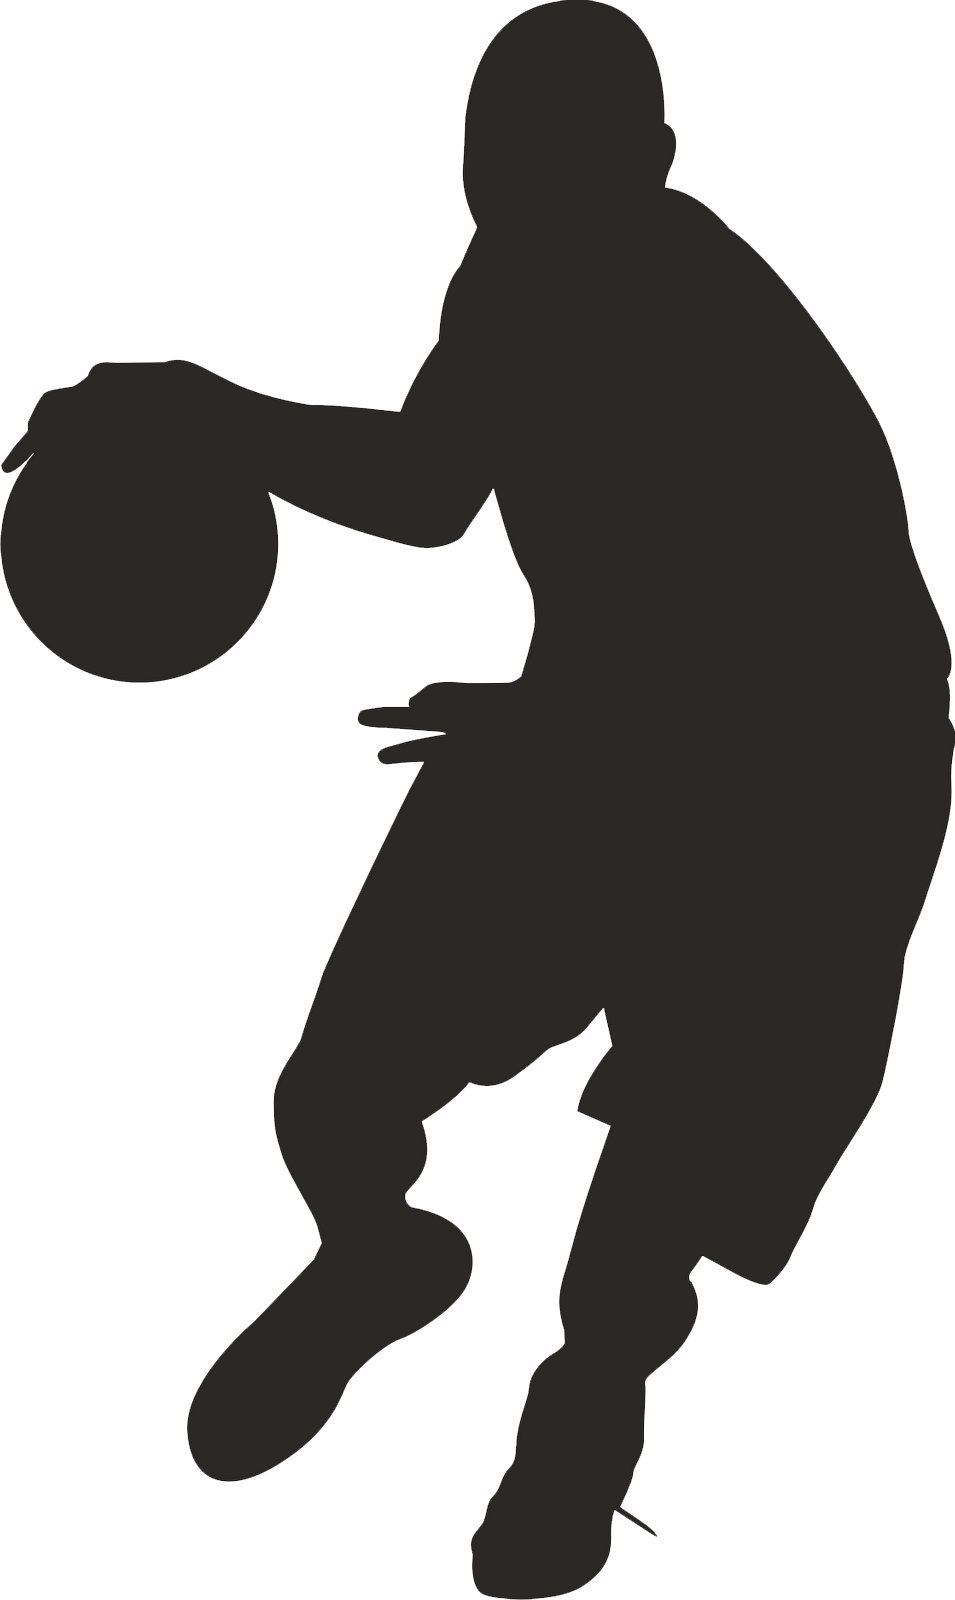 Basketball player clipart silhouette svg download Silhouette Basketball Players at GetDrawings.com | Free for personal ... svg download